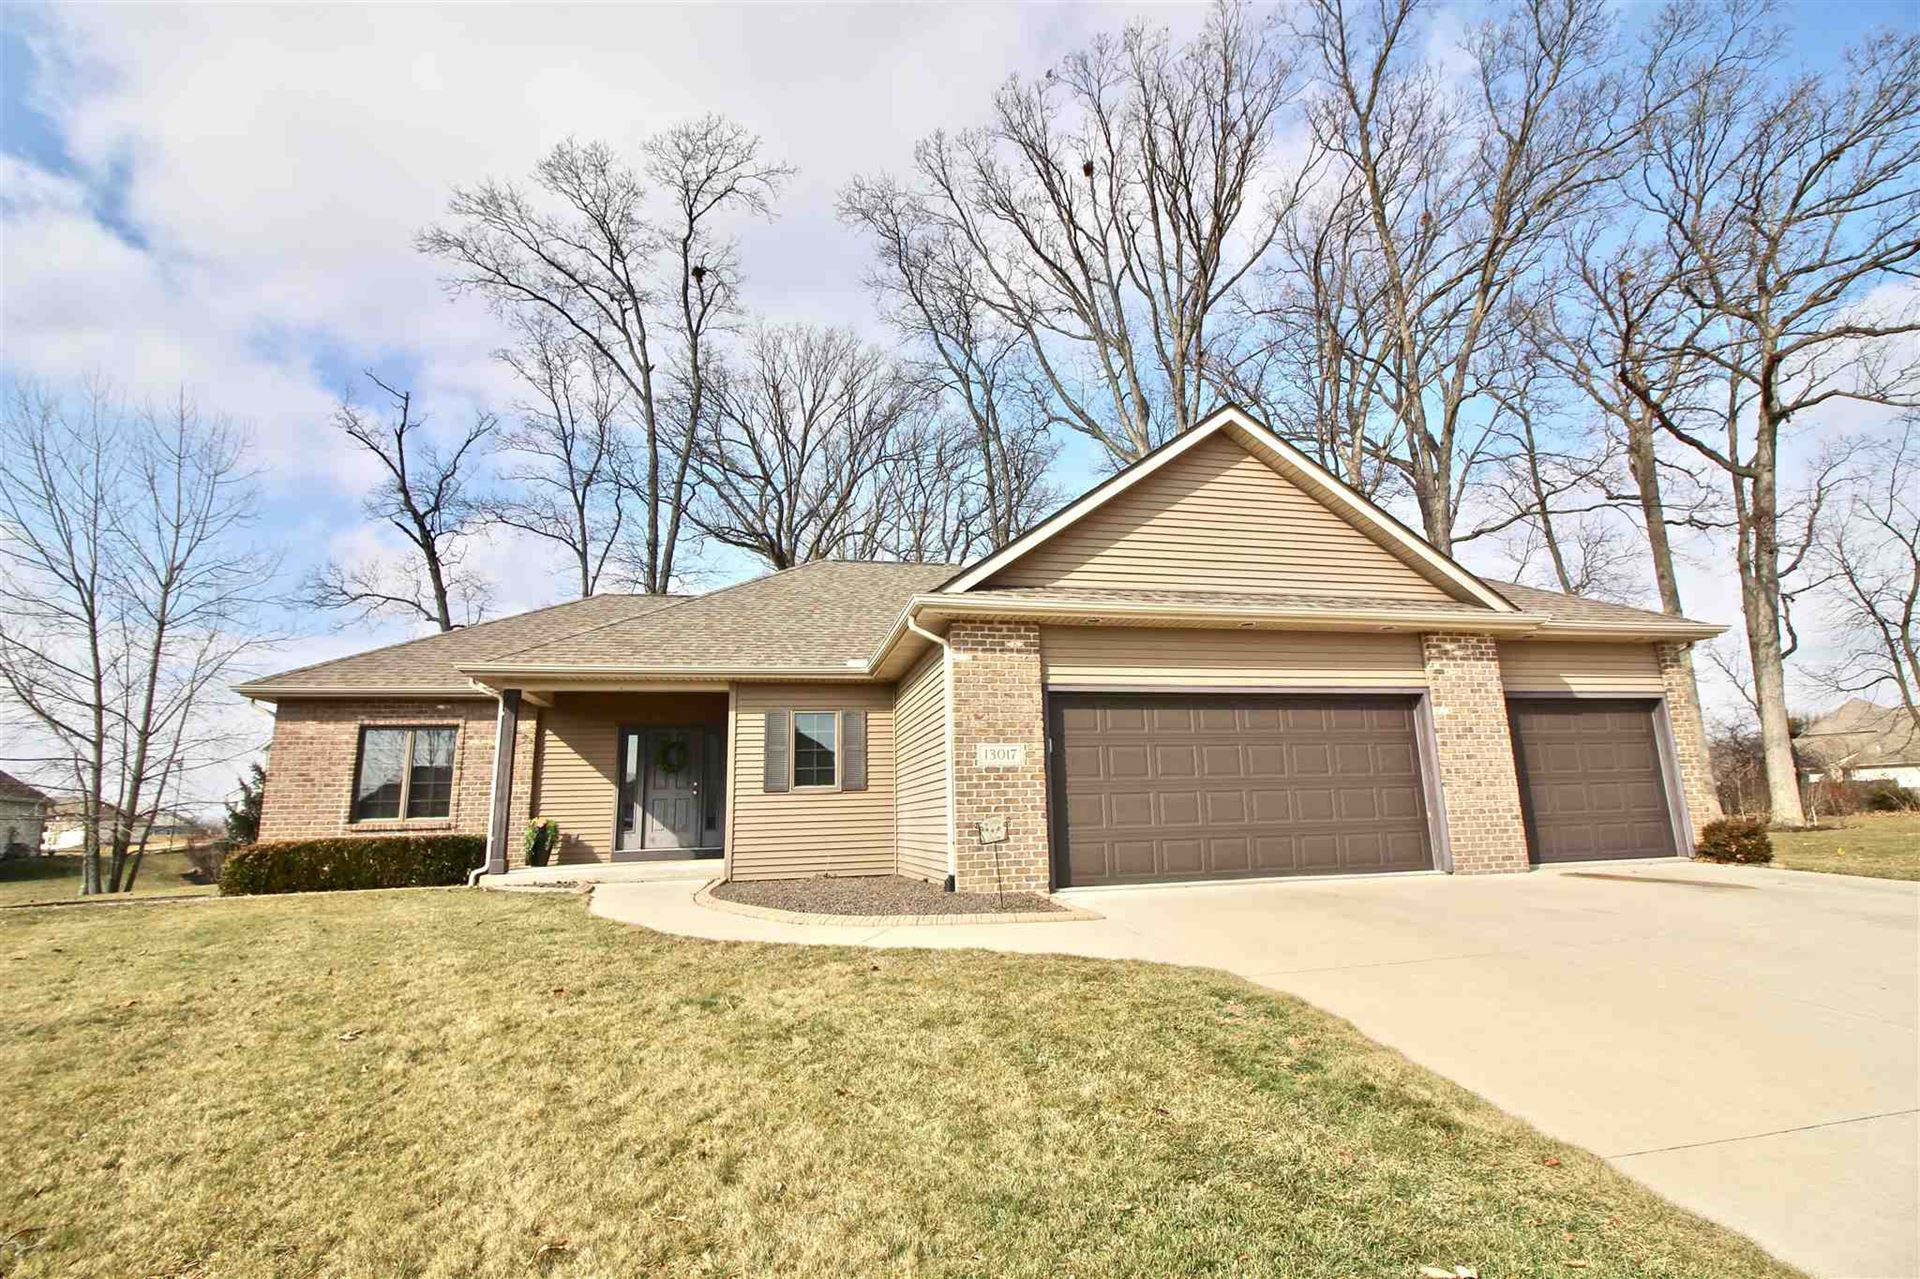 13017 Regatta Place, Fort Wayne, IN 46845 - #: 202006458